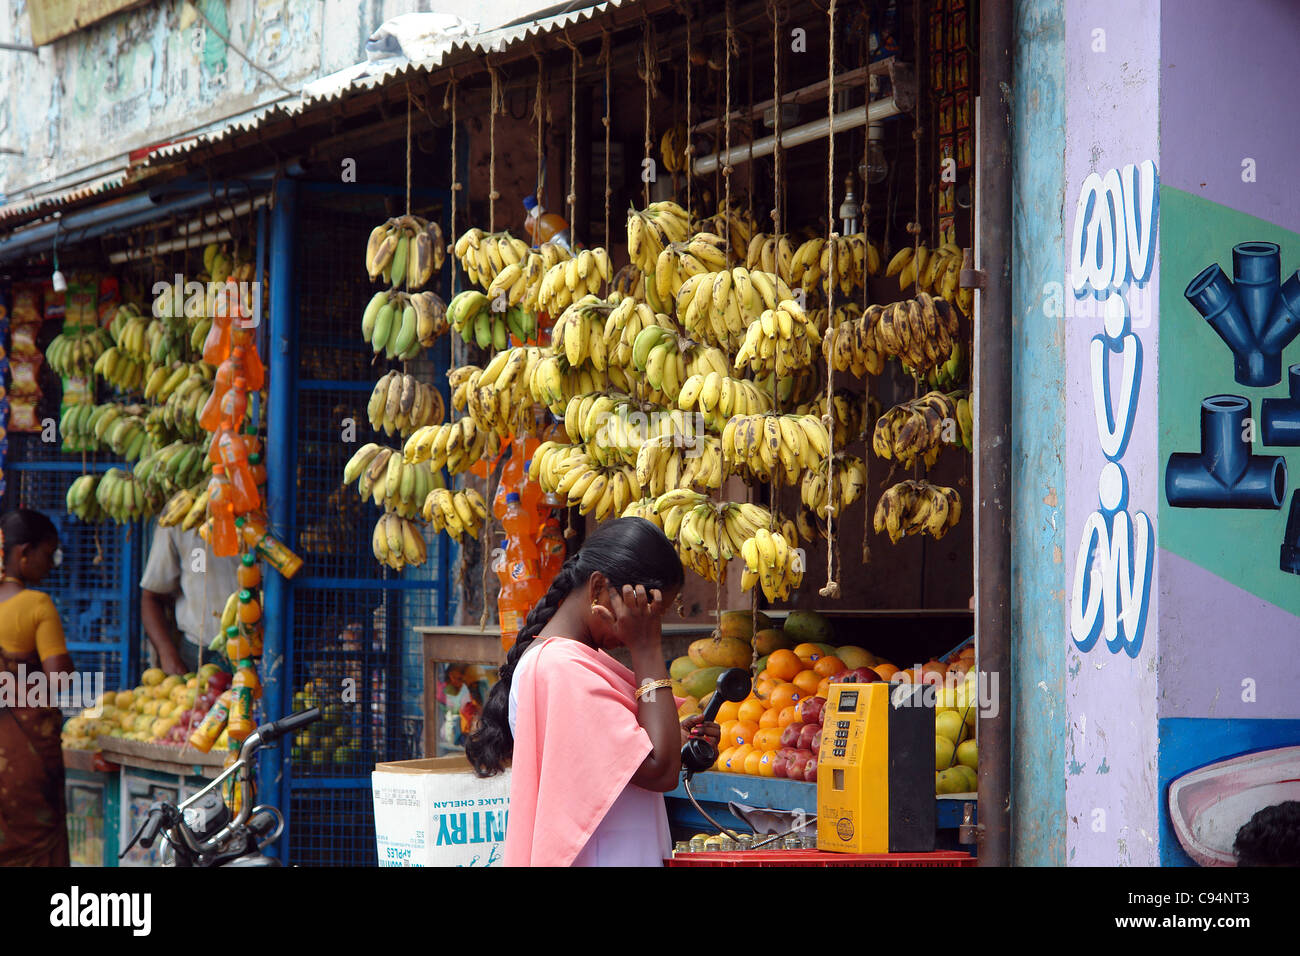 Fruits Markets Buyers Bananas South India Fresh Food - Stock Image